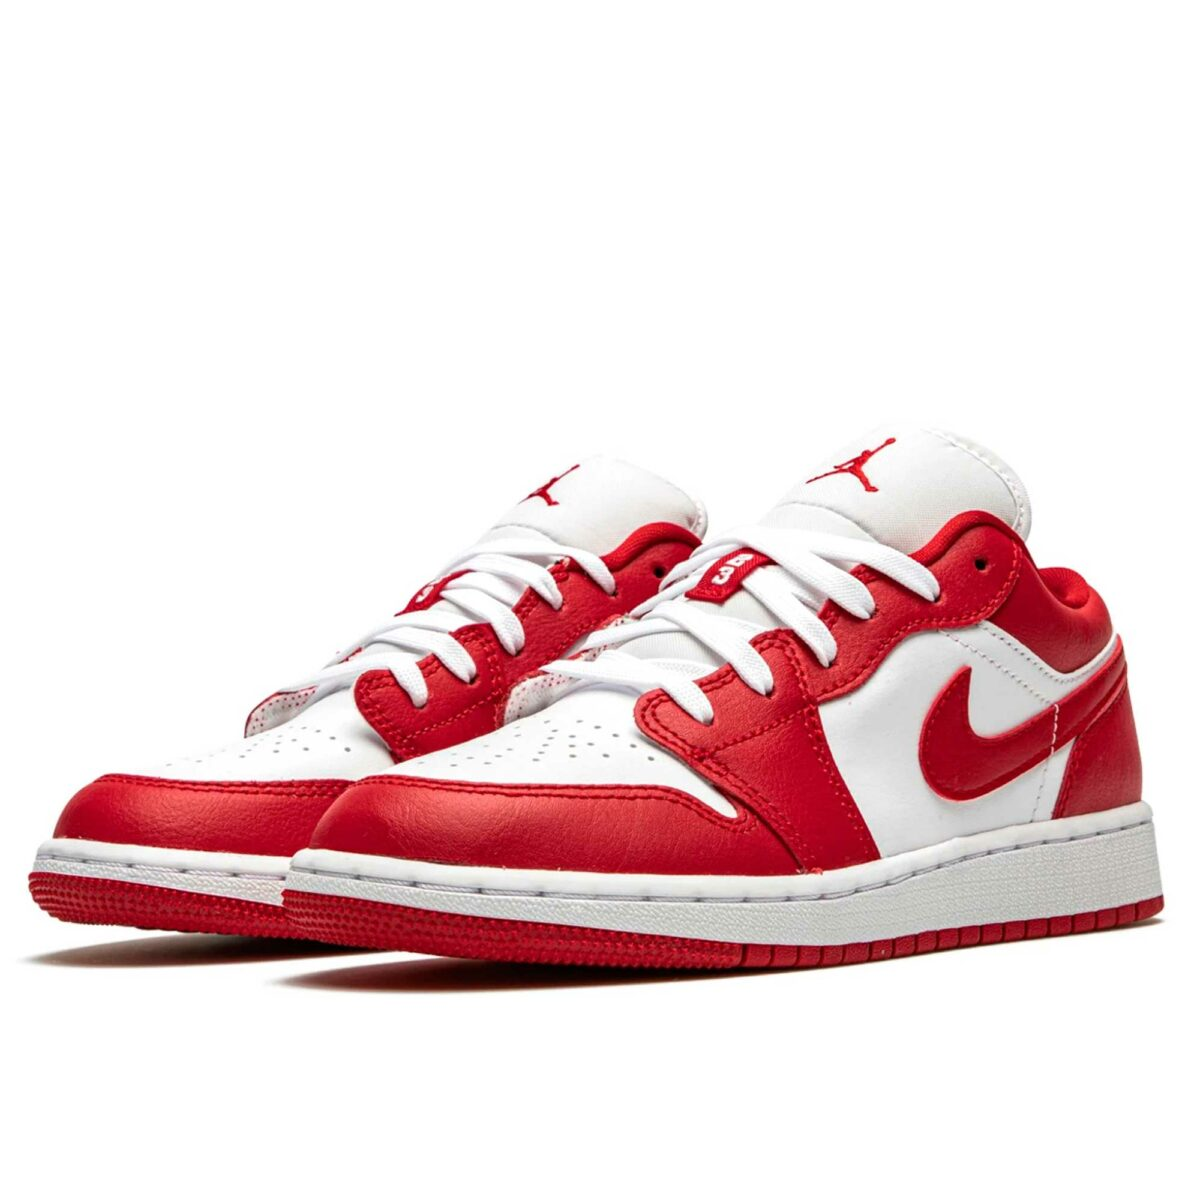 nike air jordan 1 low GS gym red white 553560_611 купить